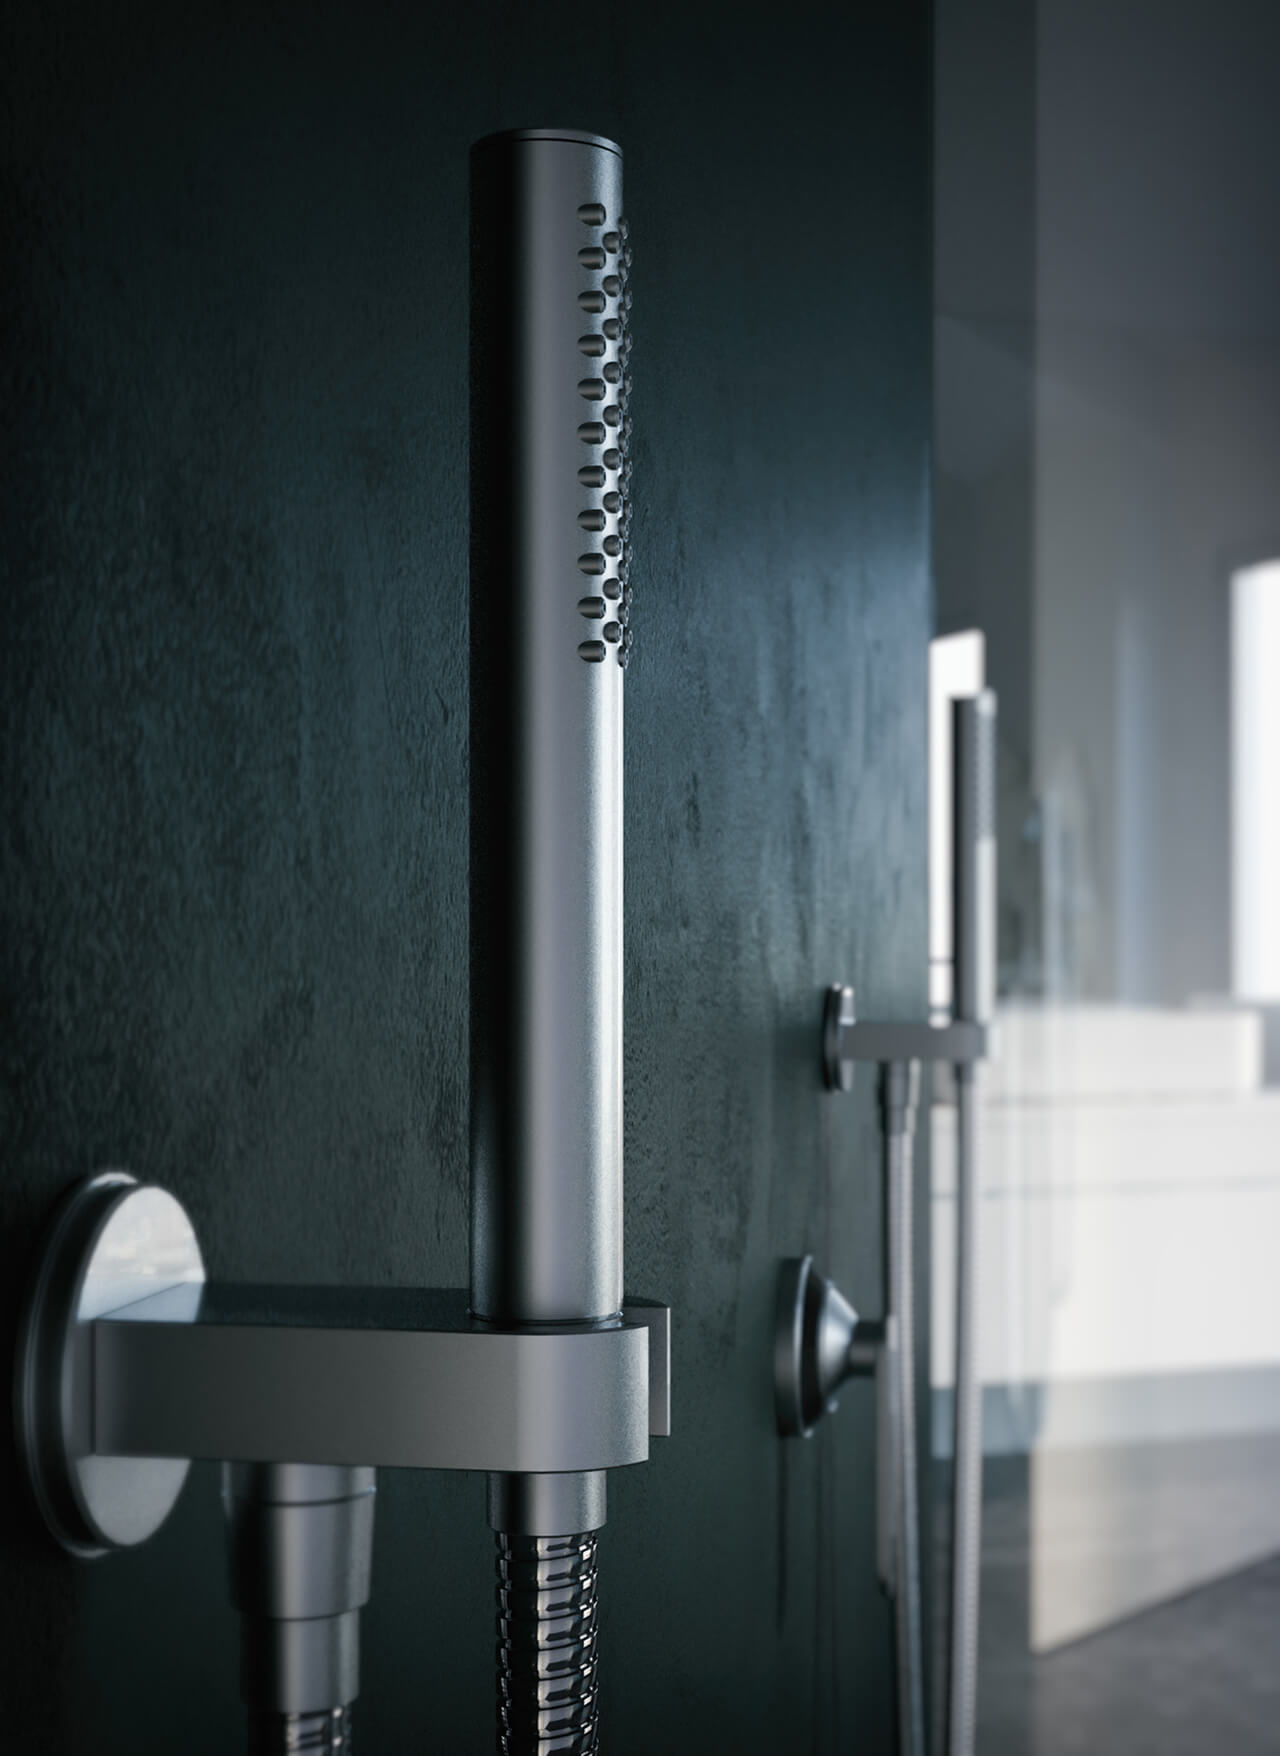 Computer Generated image showing hand held shower attachment close up